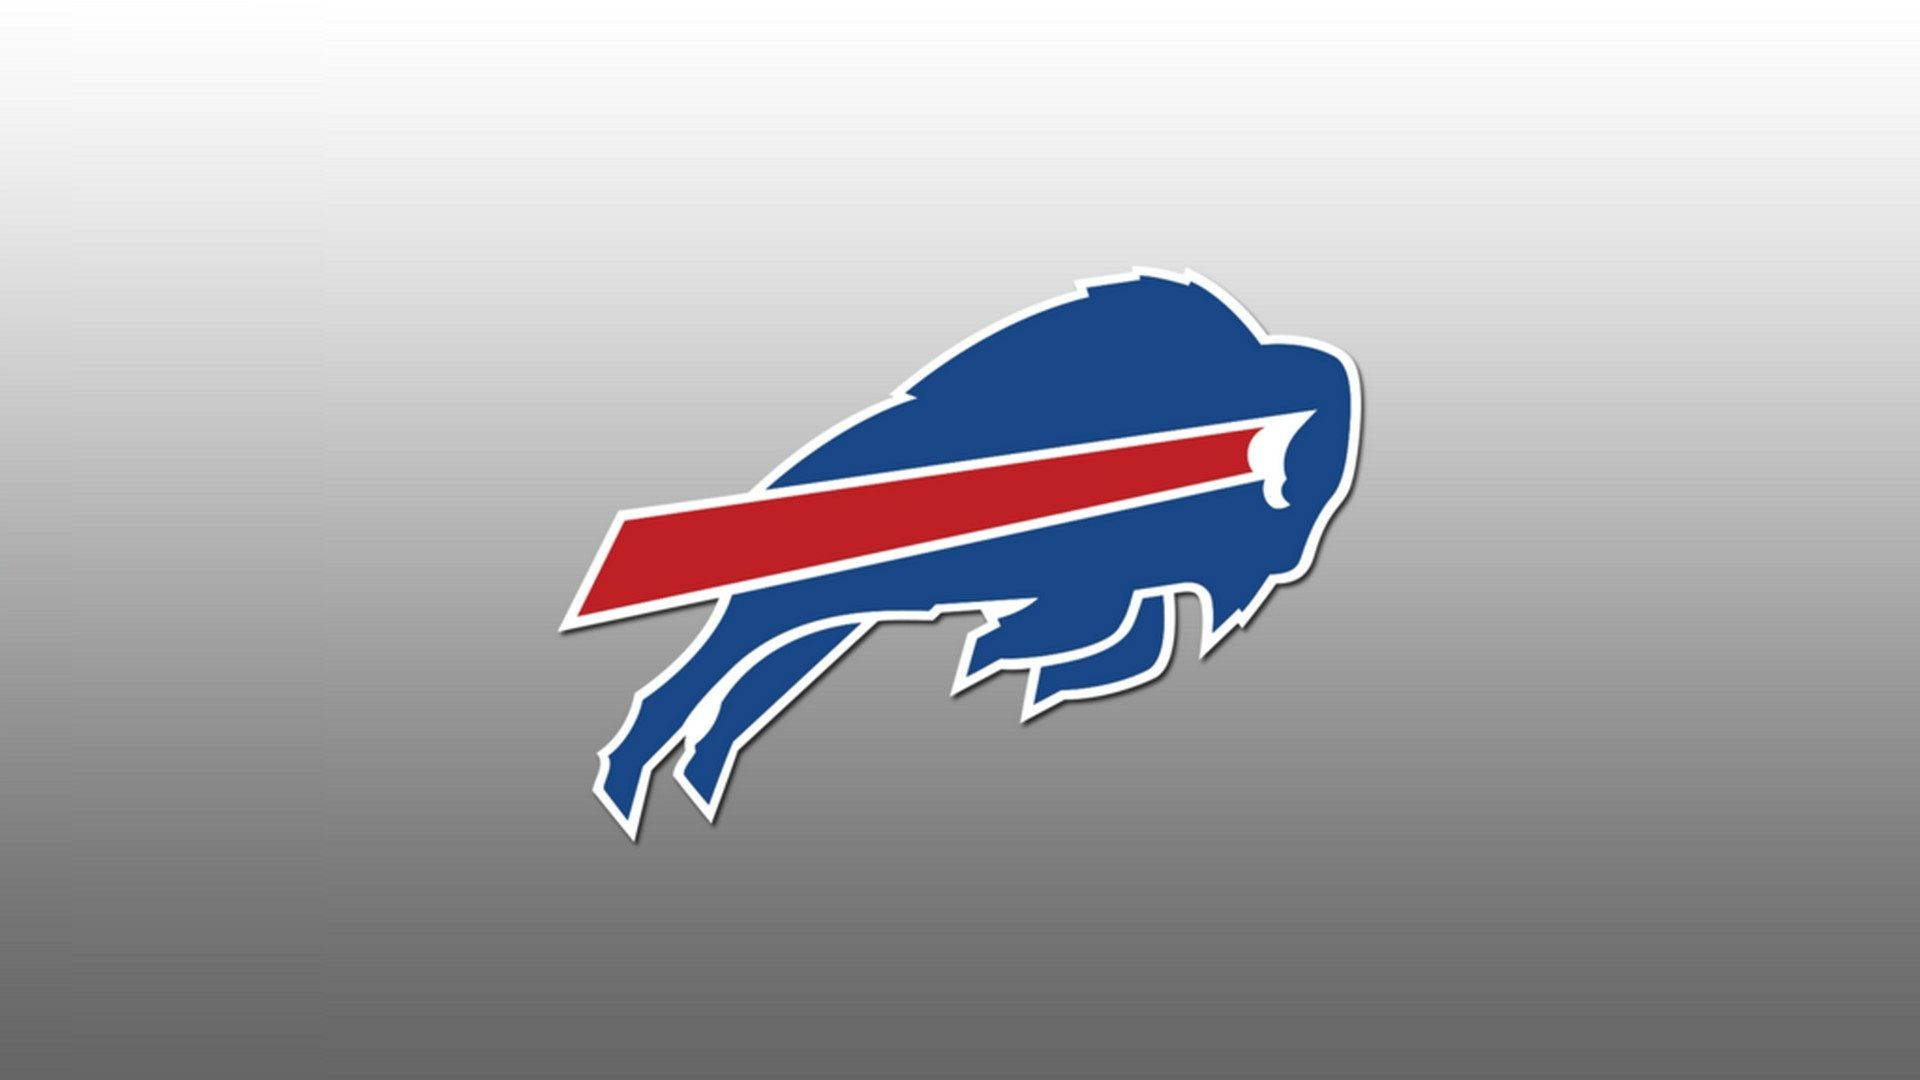 Buffalo Bills Desktop Wallpapers Wallpapers Football wallpaper 1920x1080